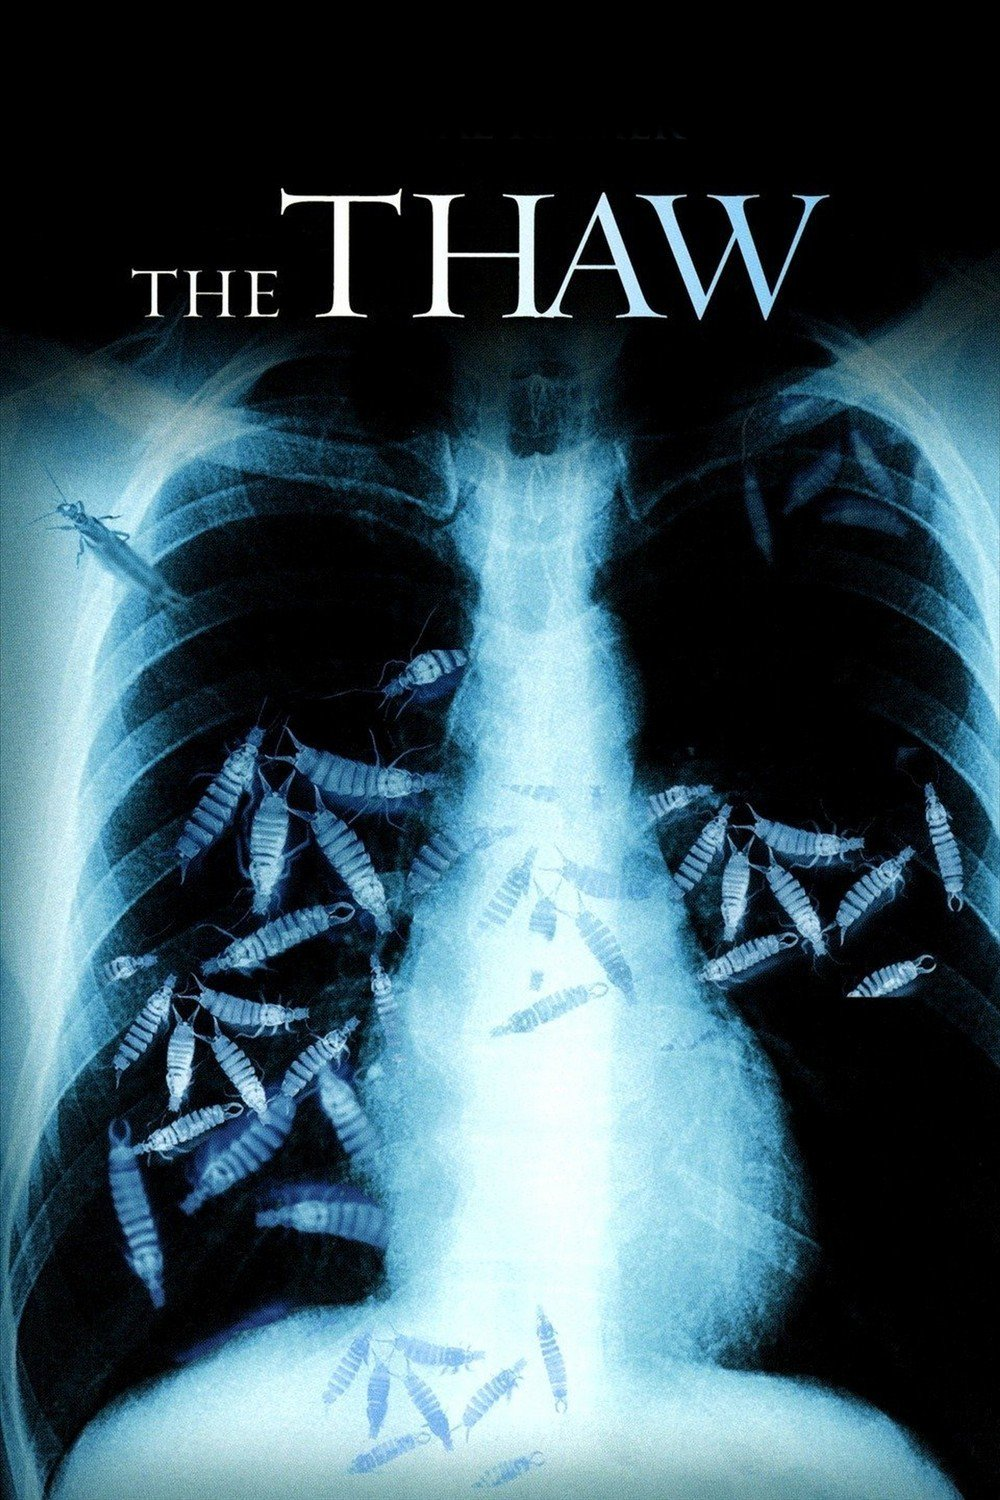 the thaw full movie free download